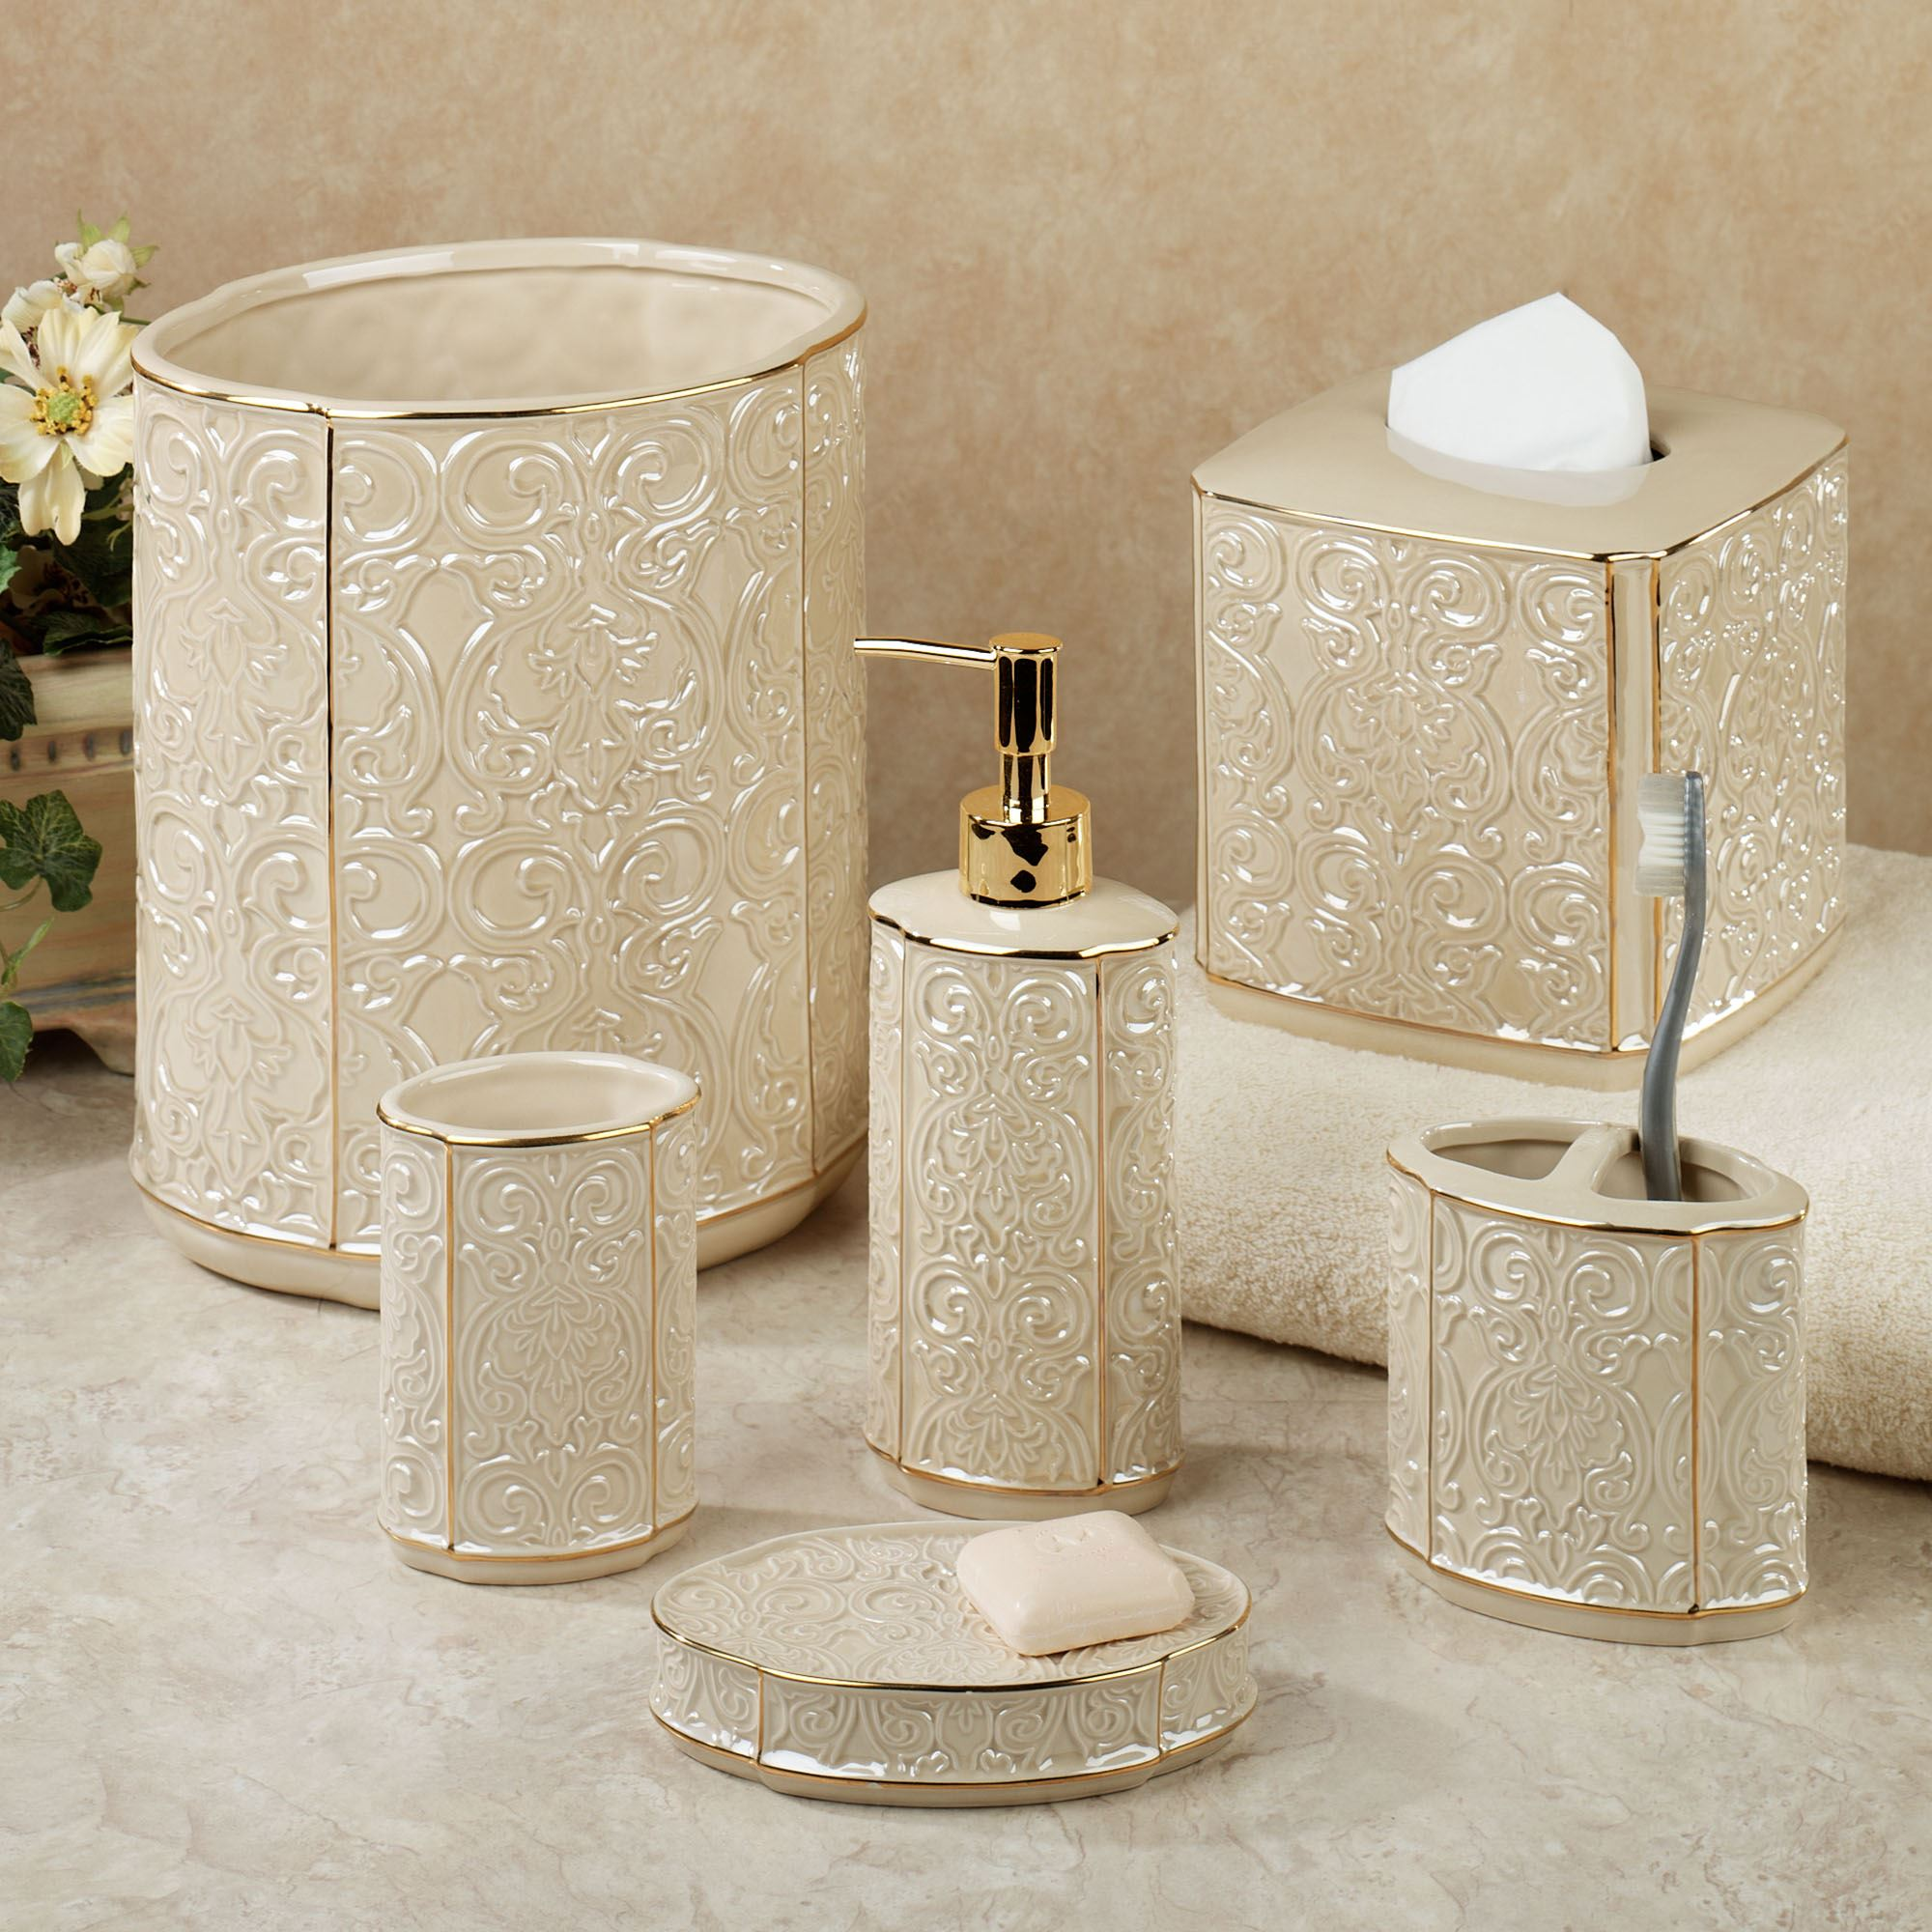 Furla cream damask ceramic bath accessories for Bath countertop accessories